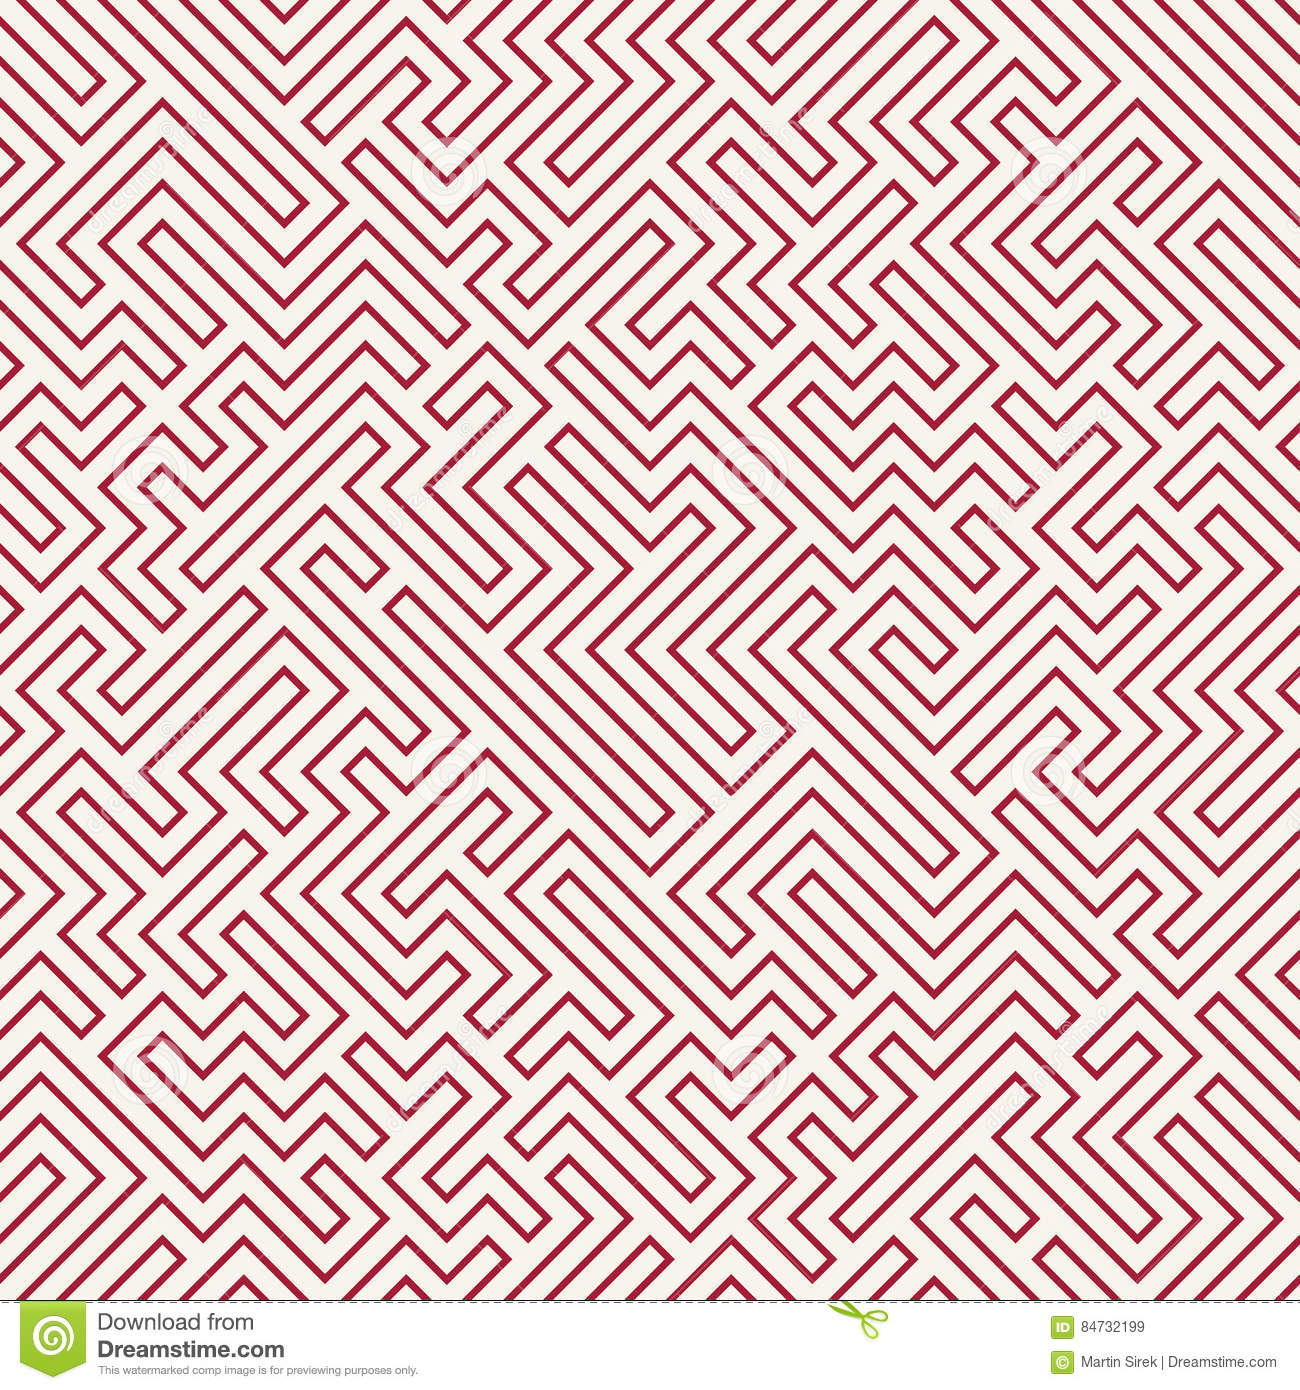 Bed sheets designs texture - Vector Graphic Abstract Geometry Maze Pattern Red Seamless Geometric Labyrinth Background